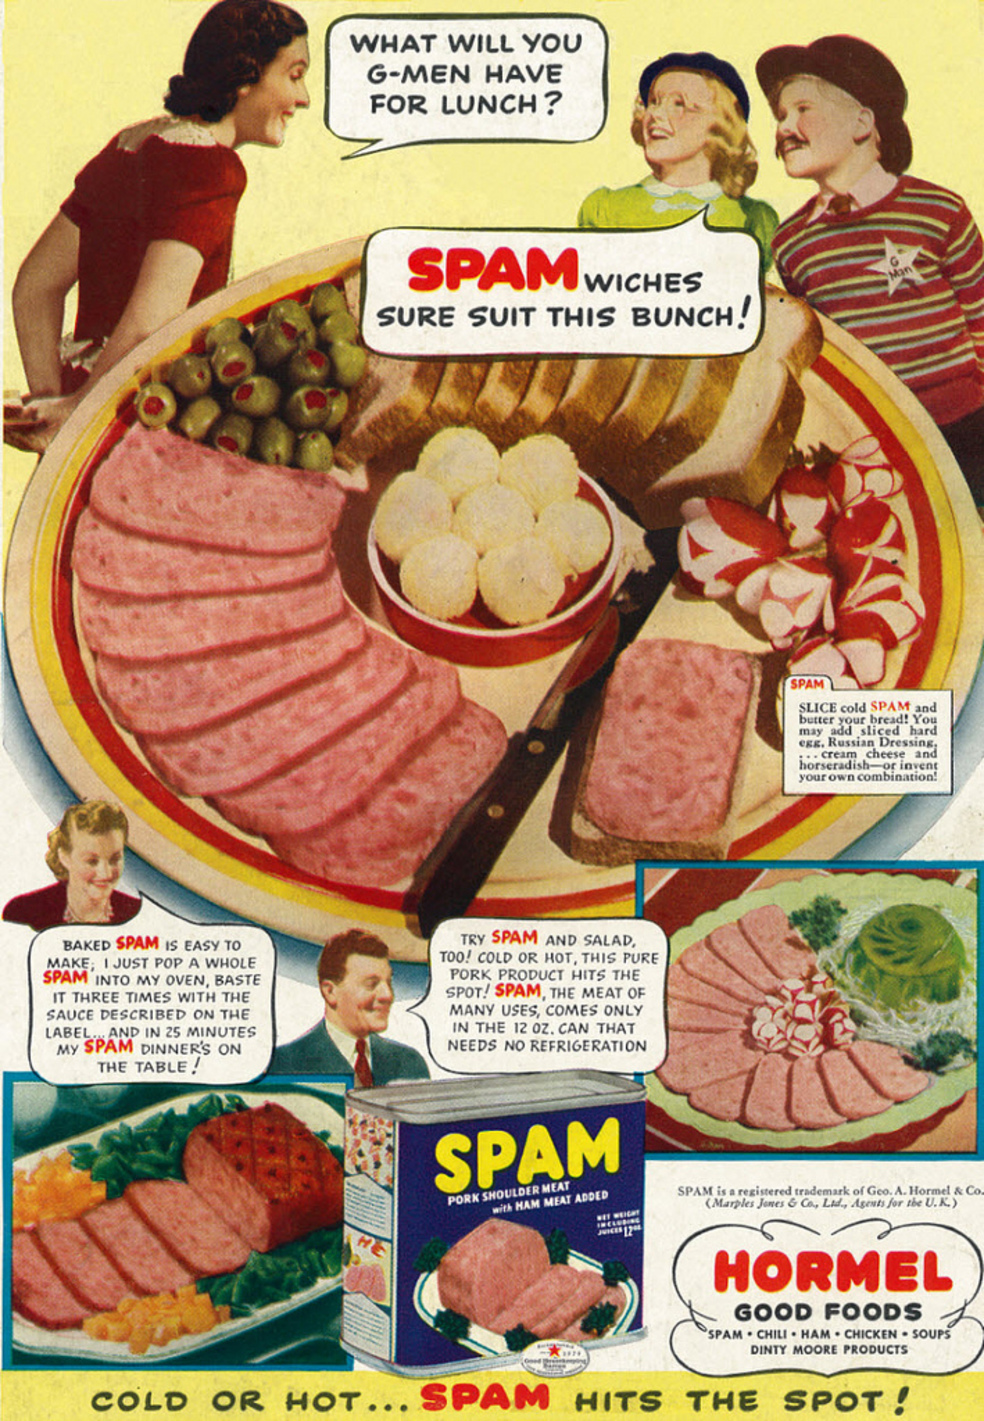 'Cold or hot…Spam hits the spot!'